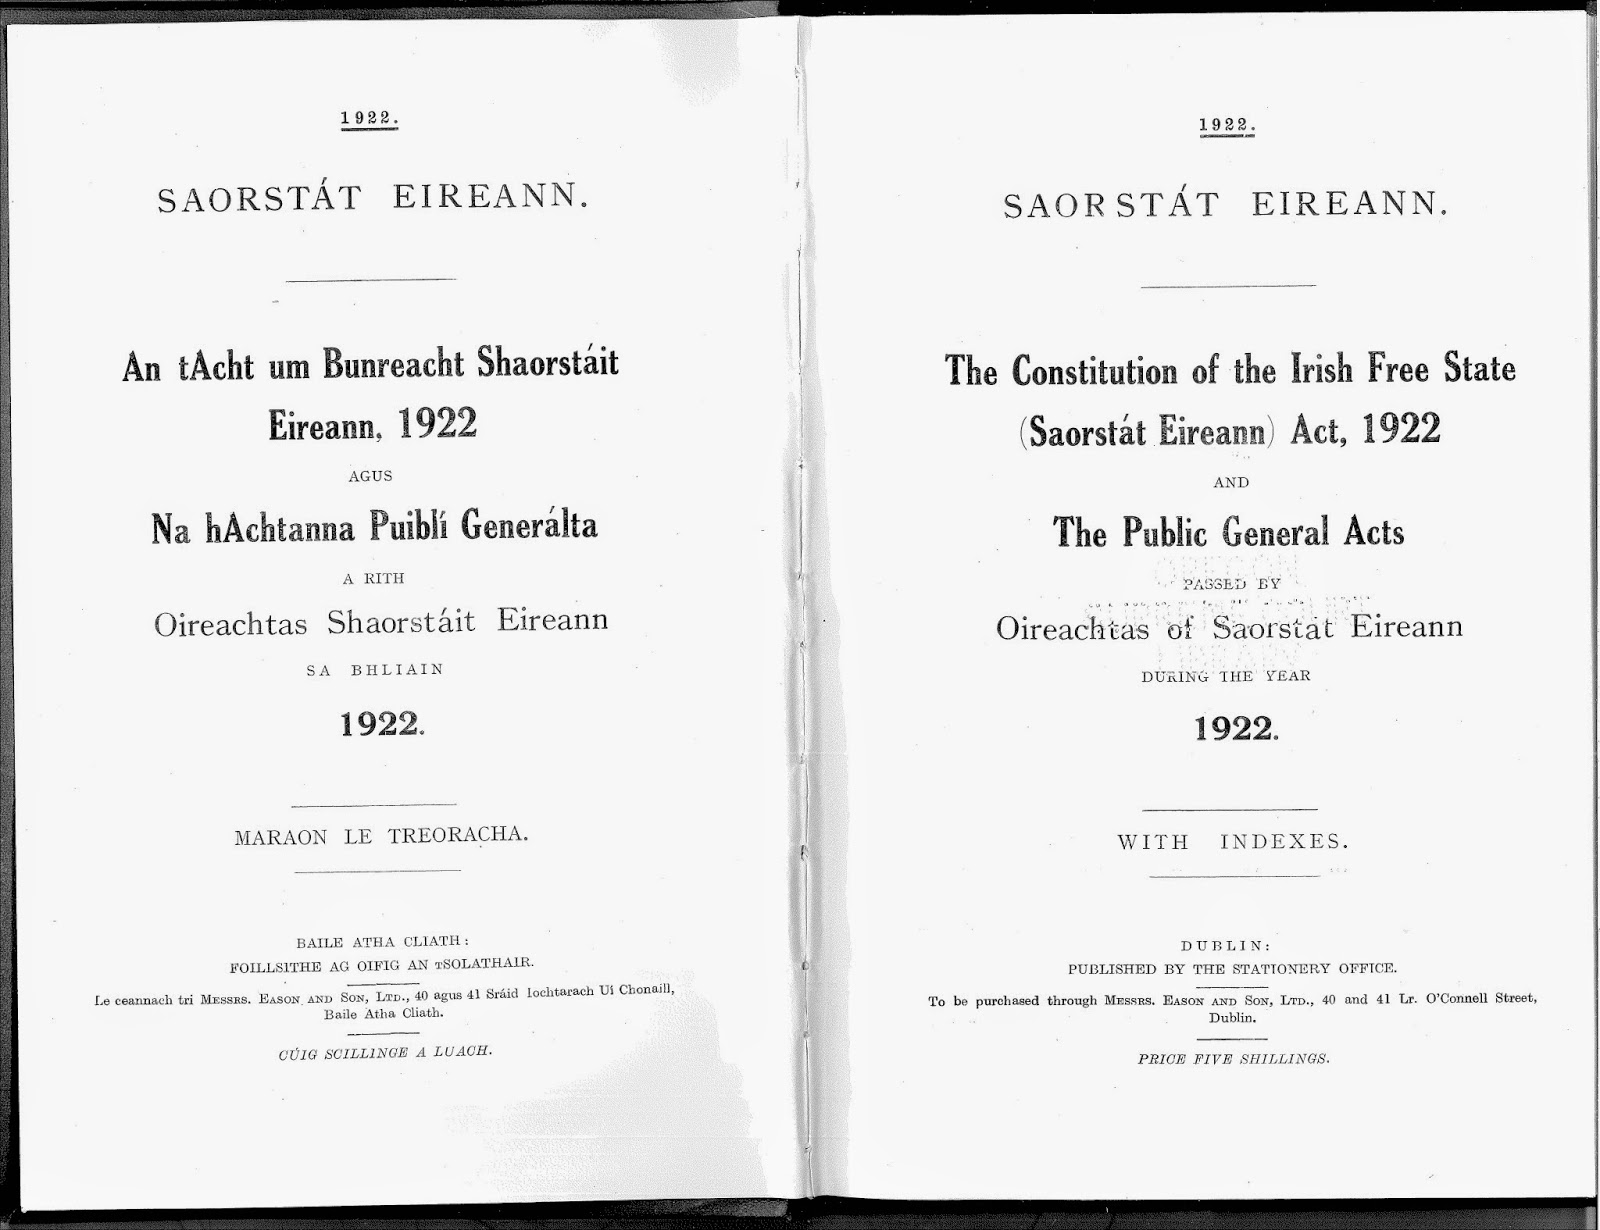 'The Free State of Ireland' was introduced in 1922